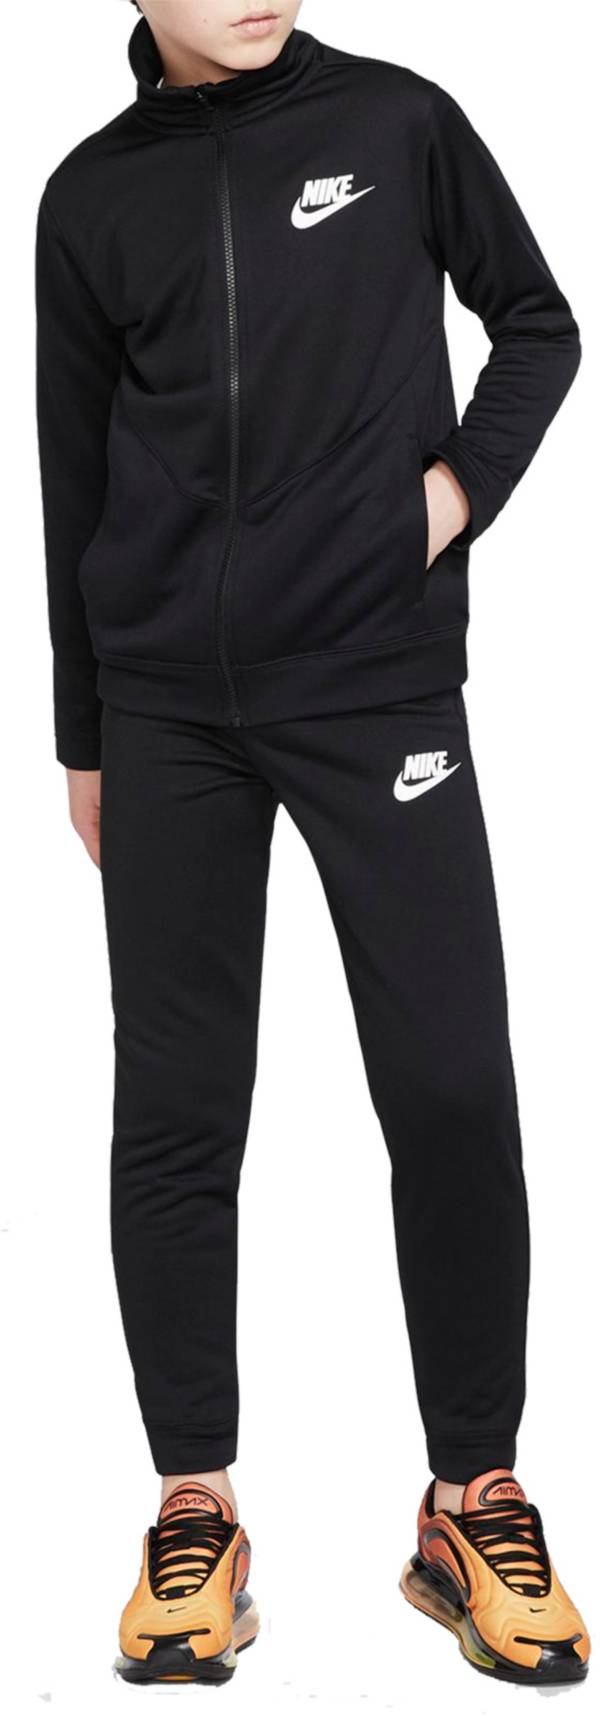 Nike Boys' Futura Track Suit Set product image